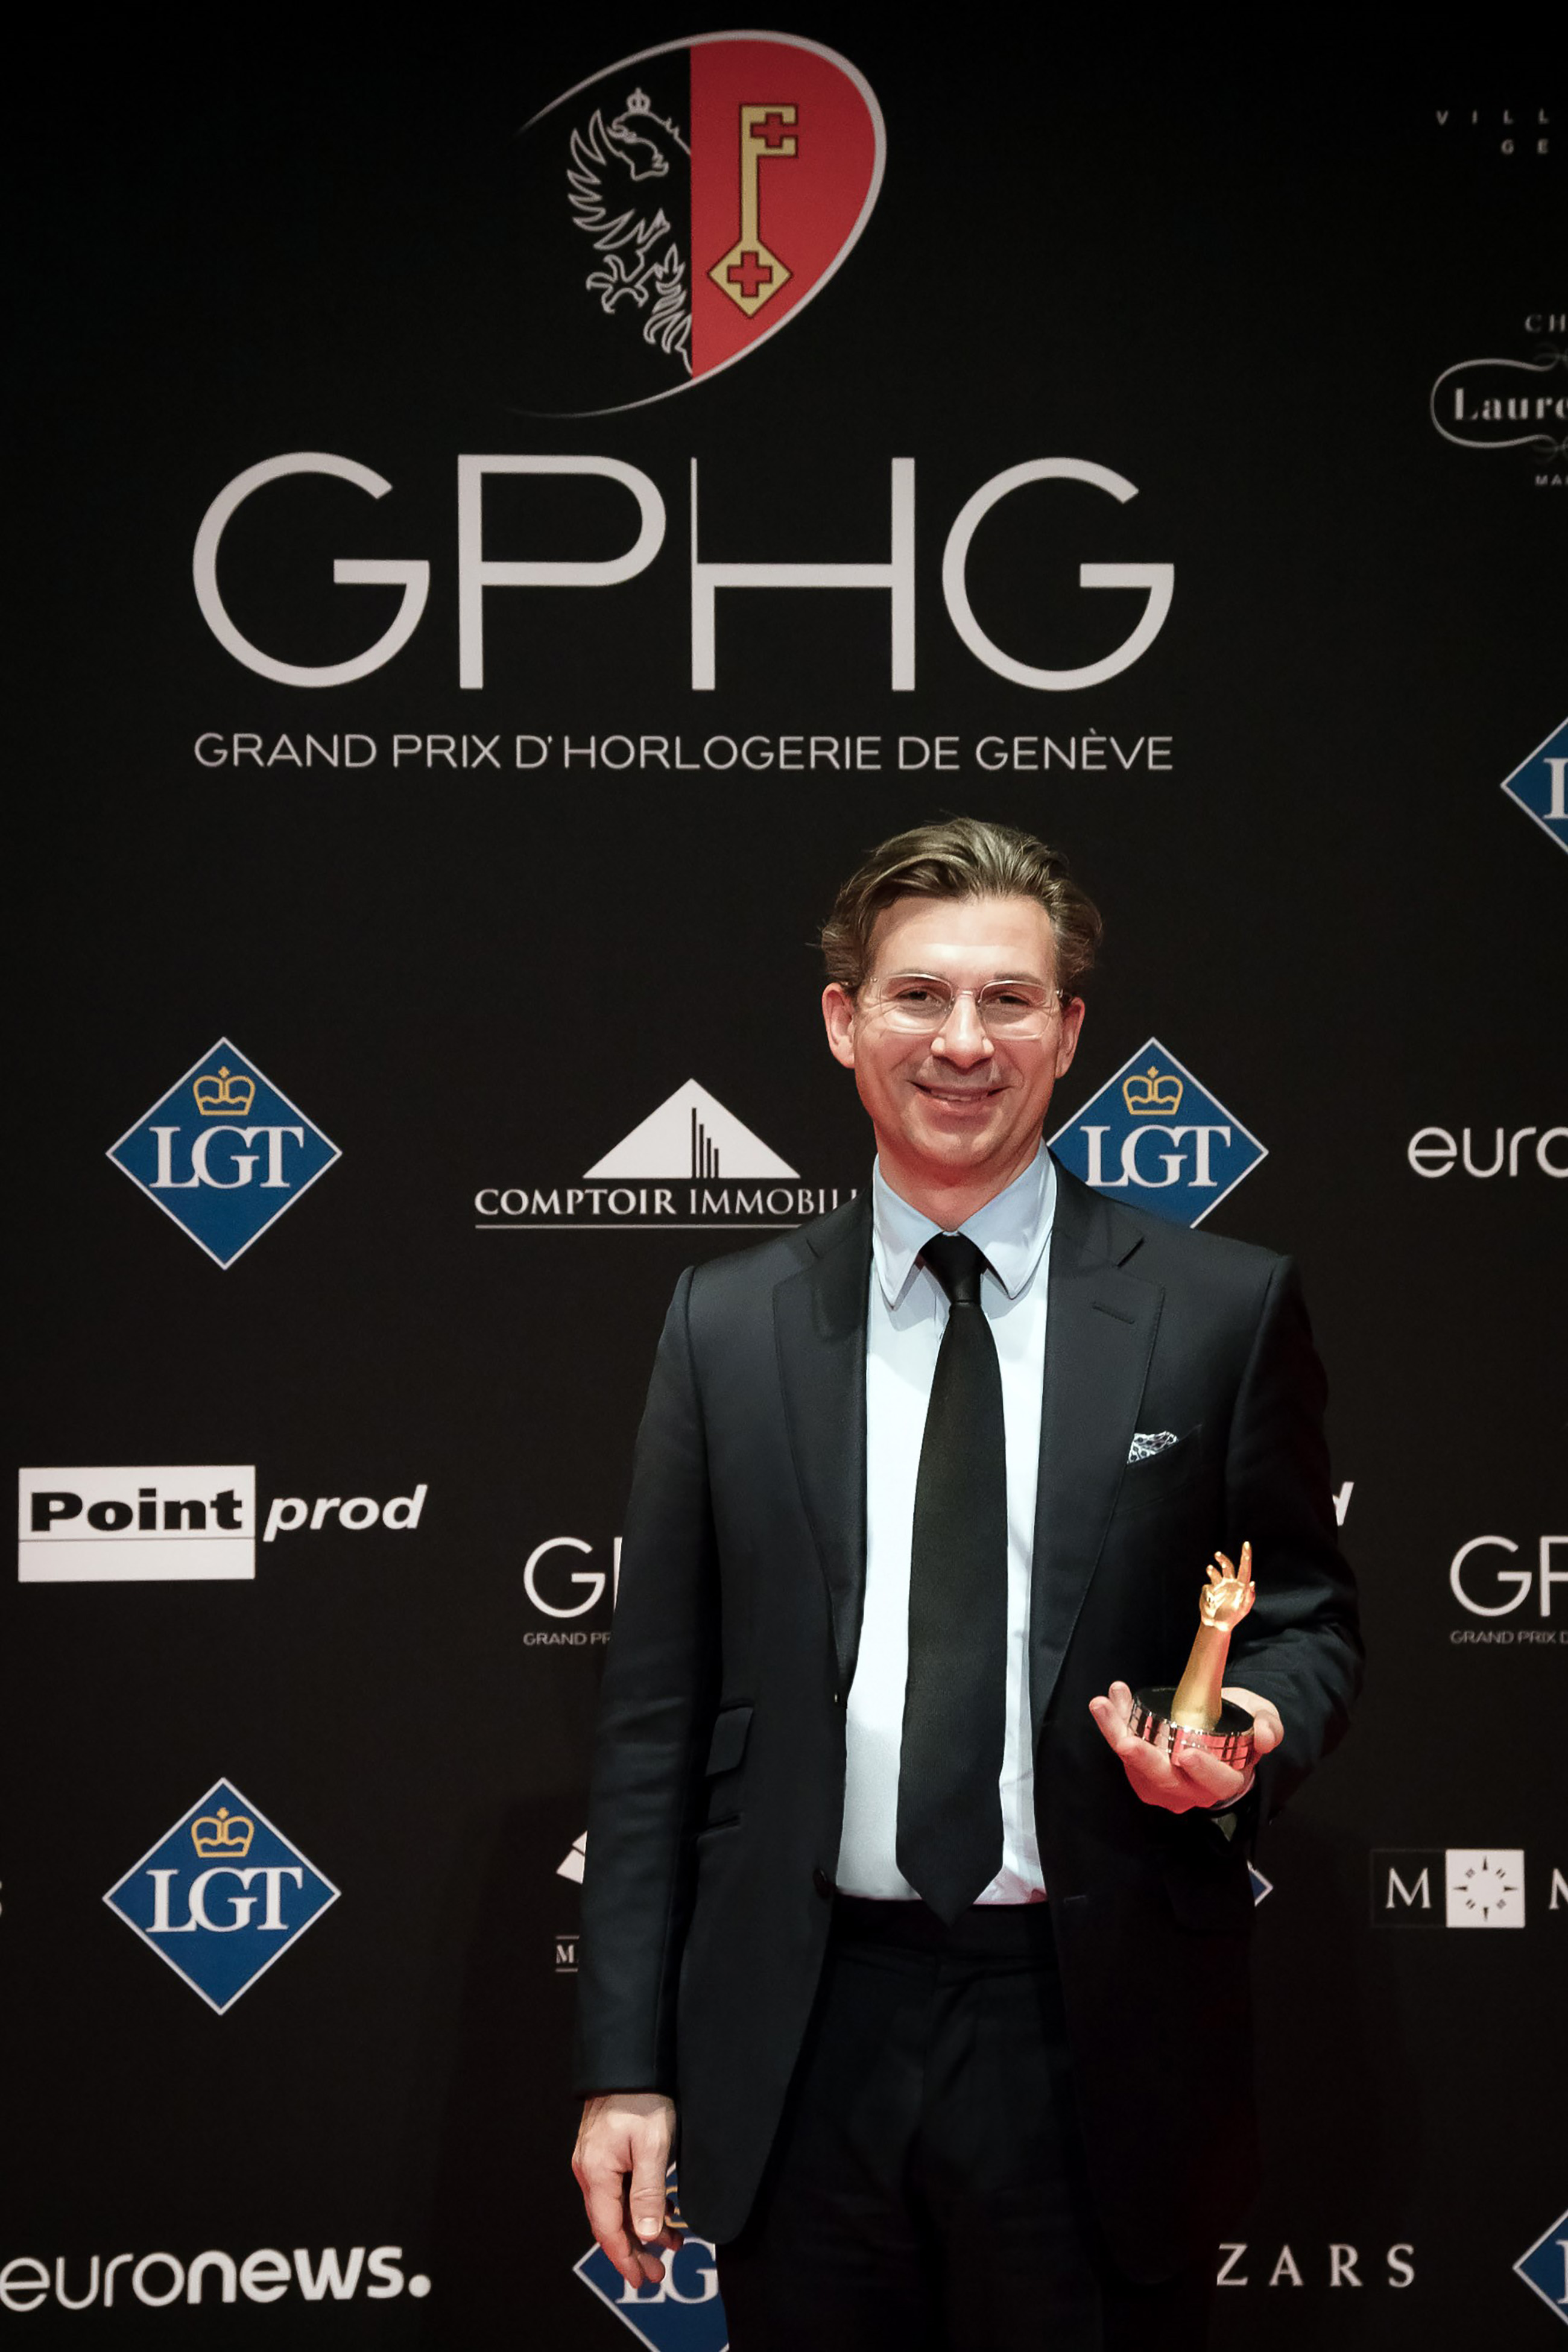 gphg2017-g-maillot-point-of-views-ch copy